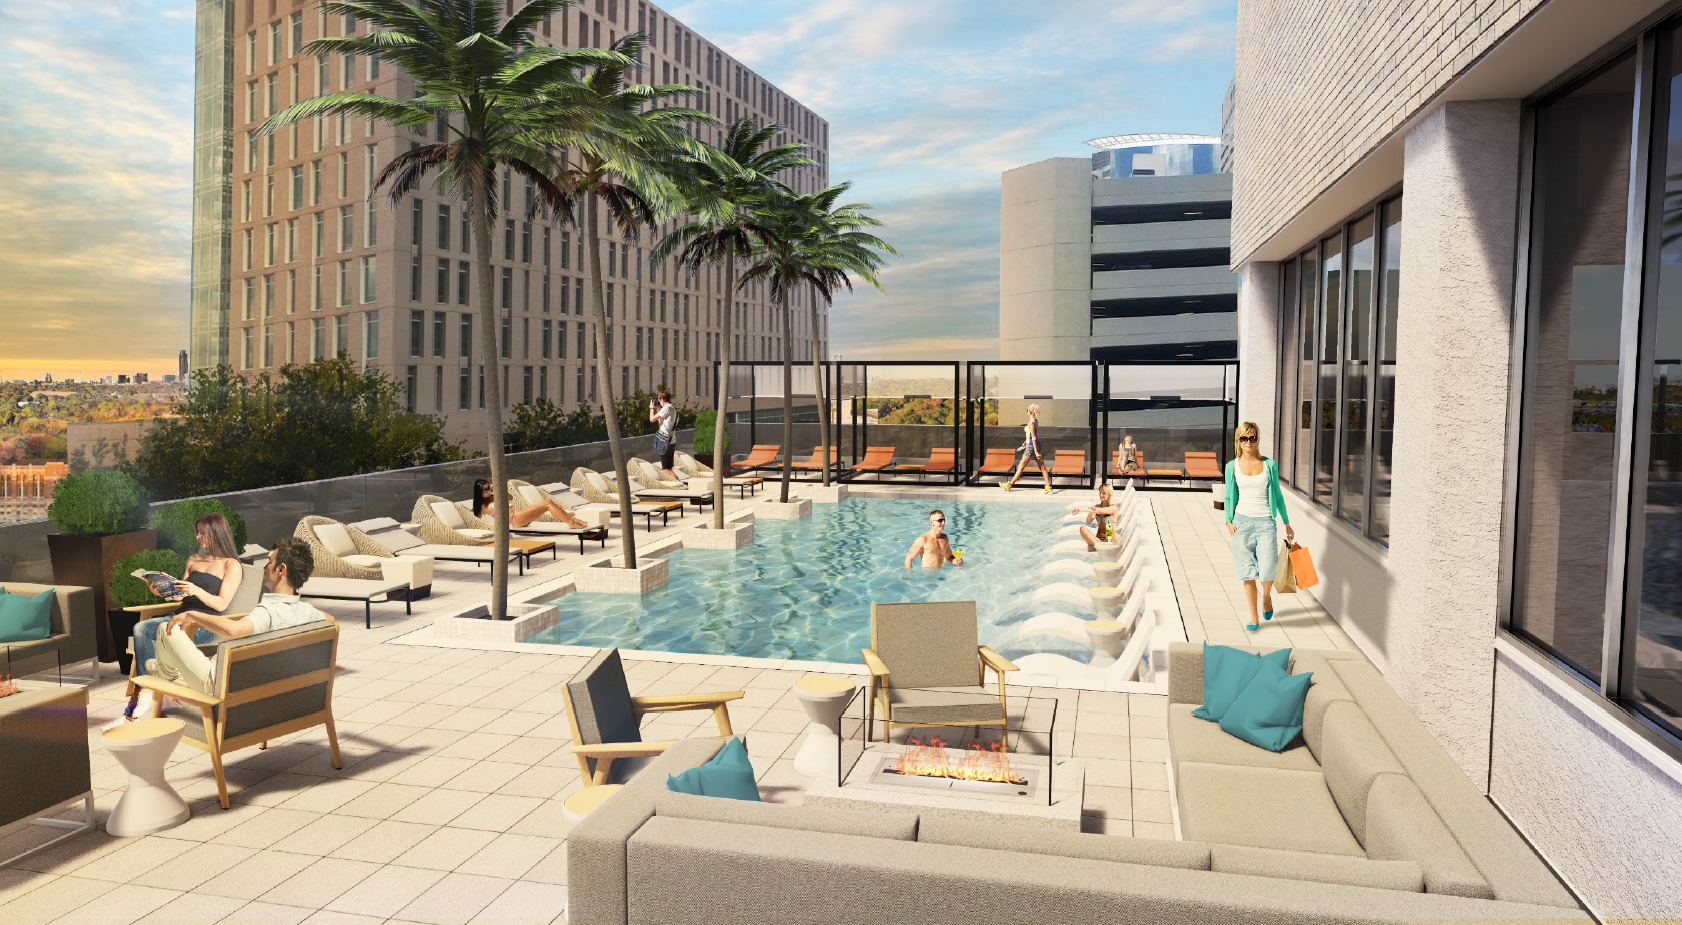 Westin Houston Medical Center Rooftop Pool and Bar Rendering Pre-launch